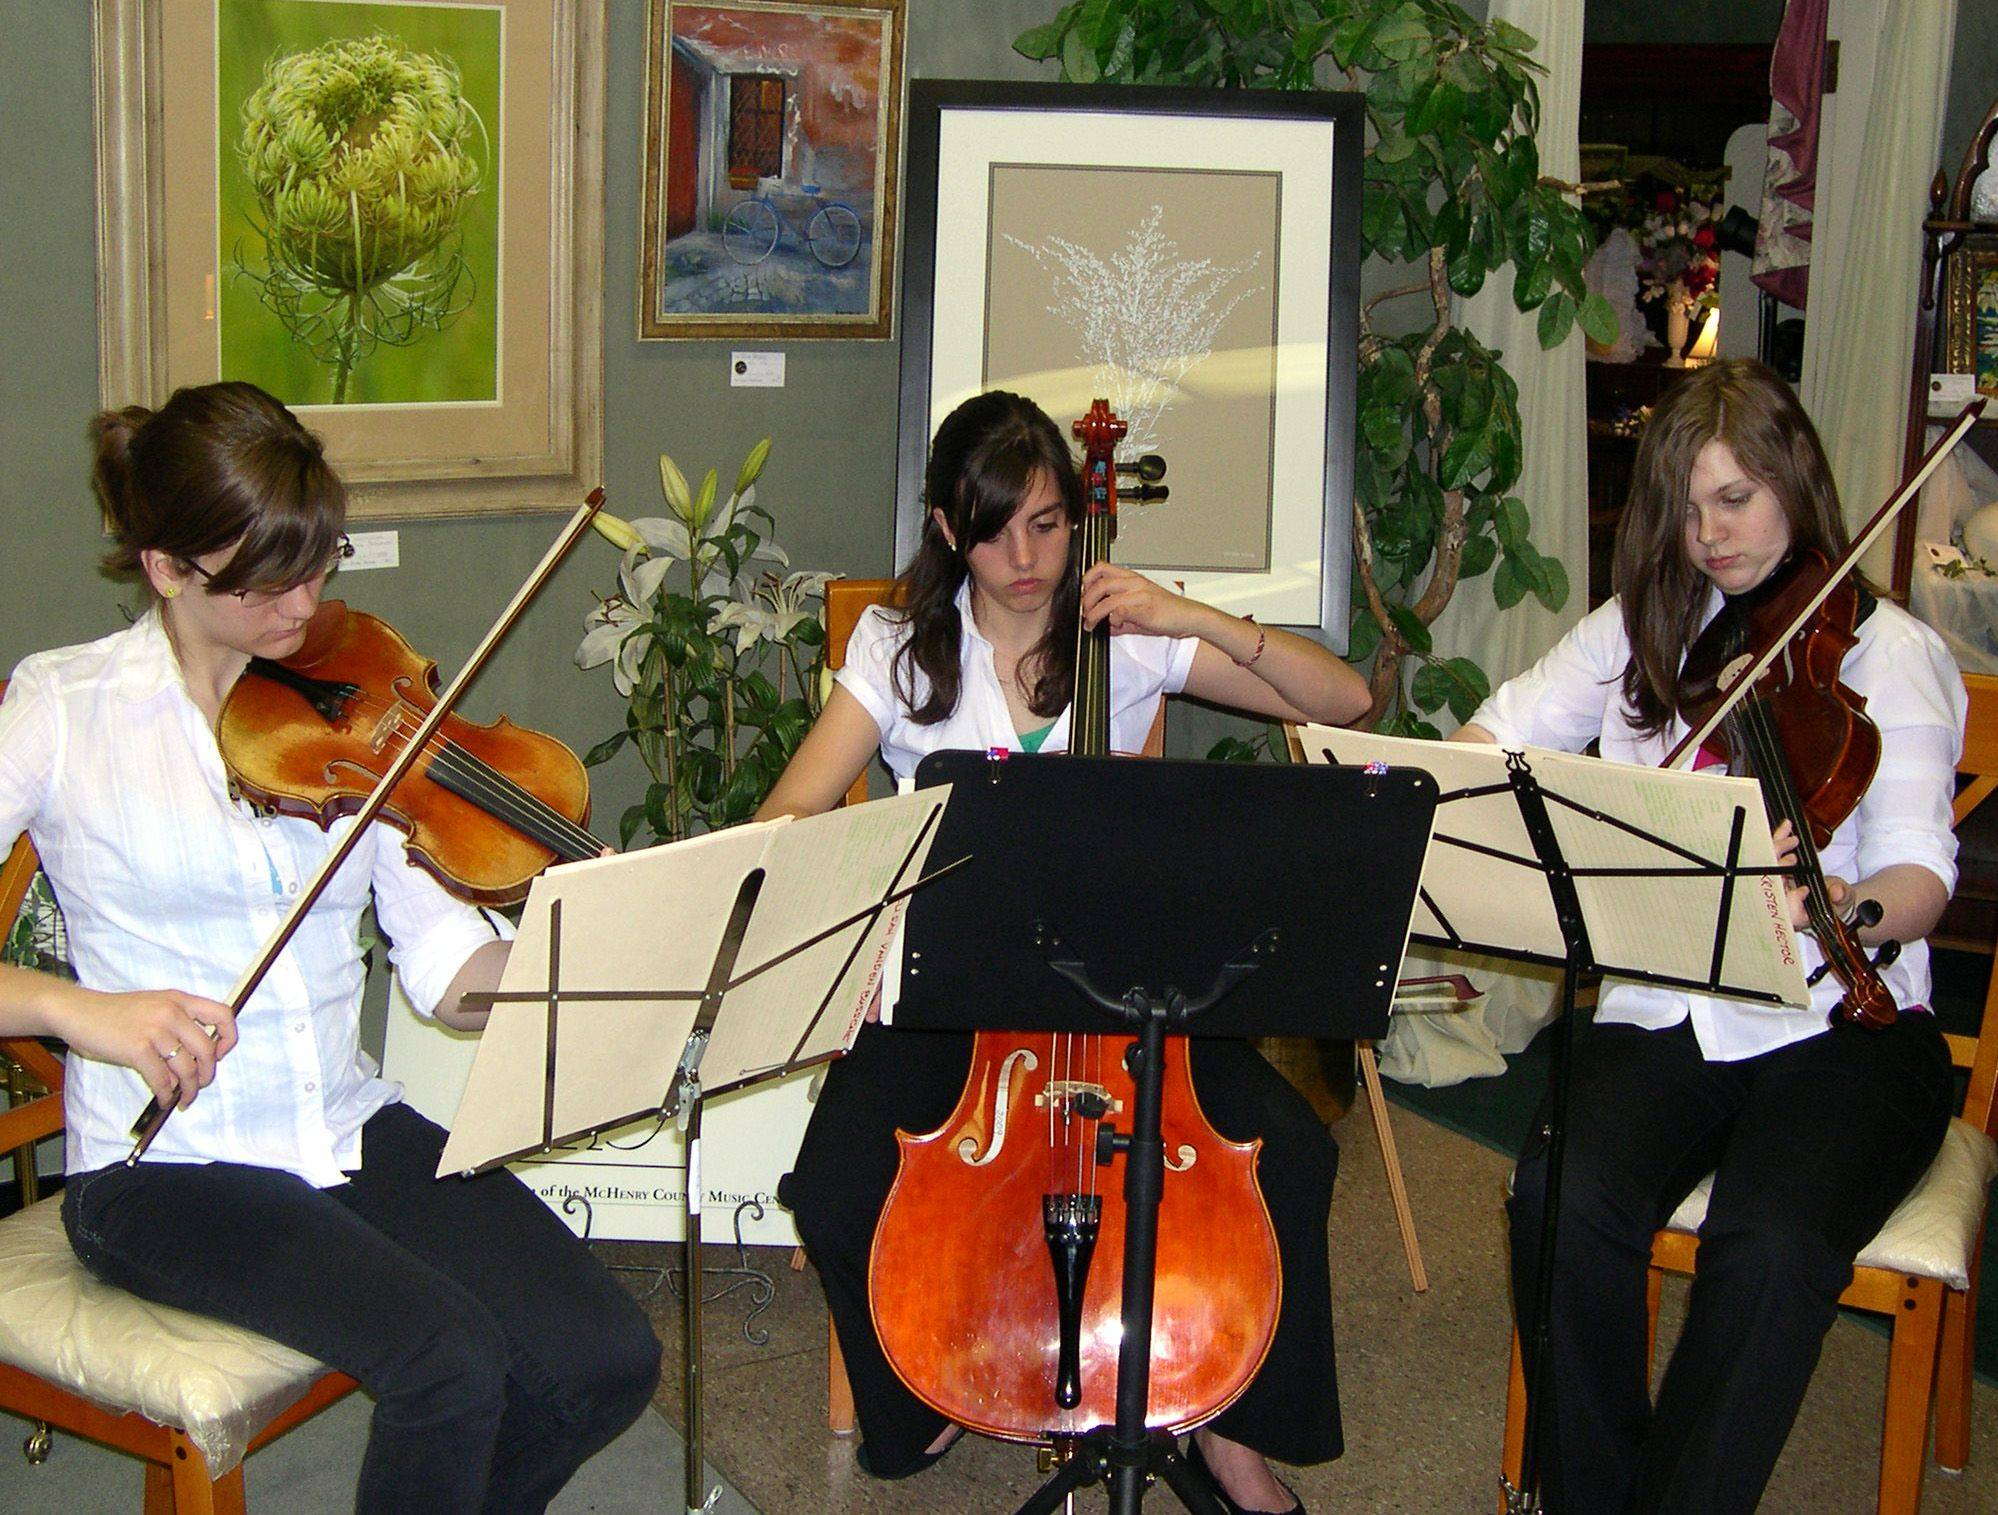 A trio from the McHenry County Youth Orchestra performs at an art gallery opening in August 2010. From left are Elisah Vanden Bussche, Lake in the Hills (violin), Kelly Halpin, Algonquin (cello), and Kristen Hector, West Dundee (viola). The orchestra will perform a concert Sunday, Feb. 27, at the Raue Center for the Arts in Crystal Lake.